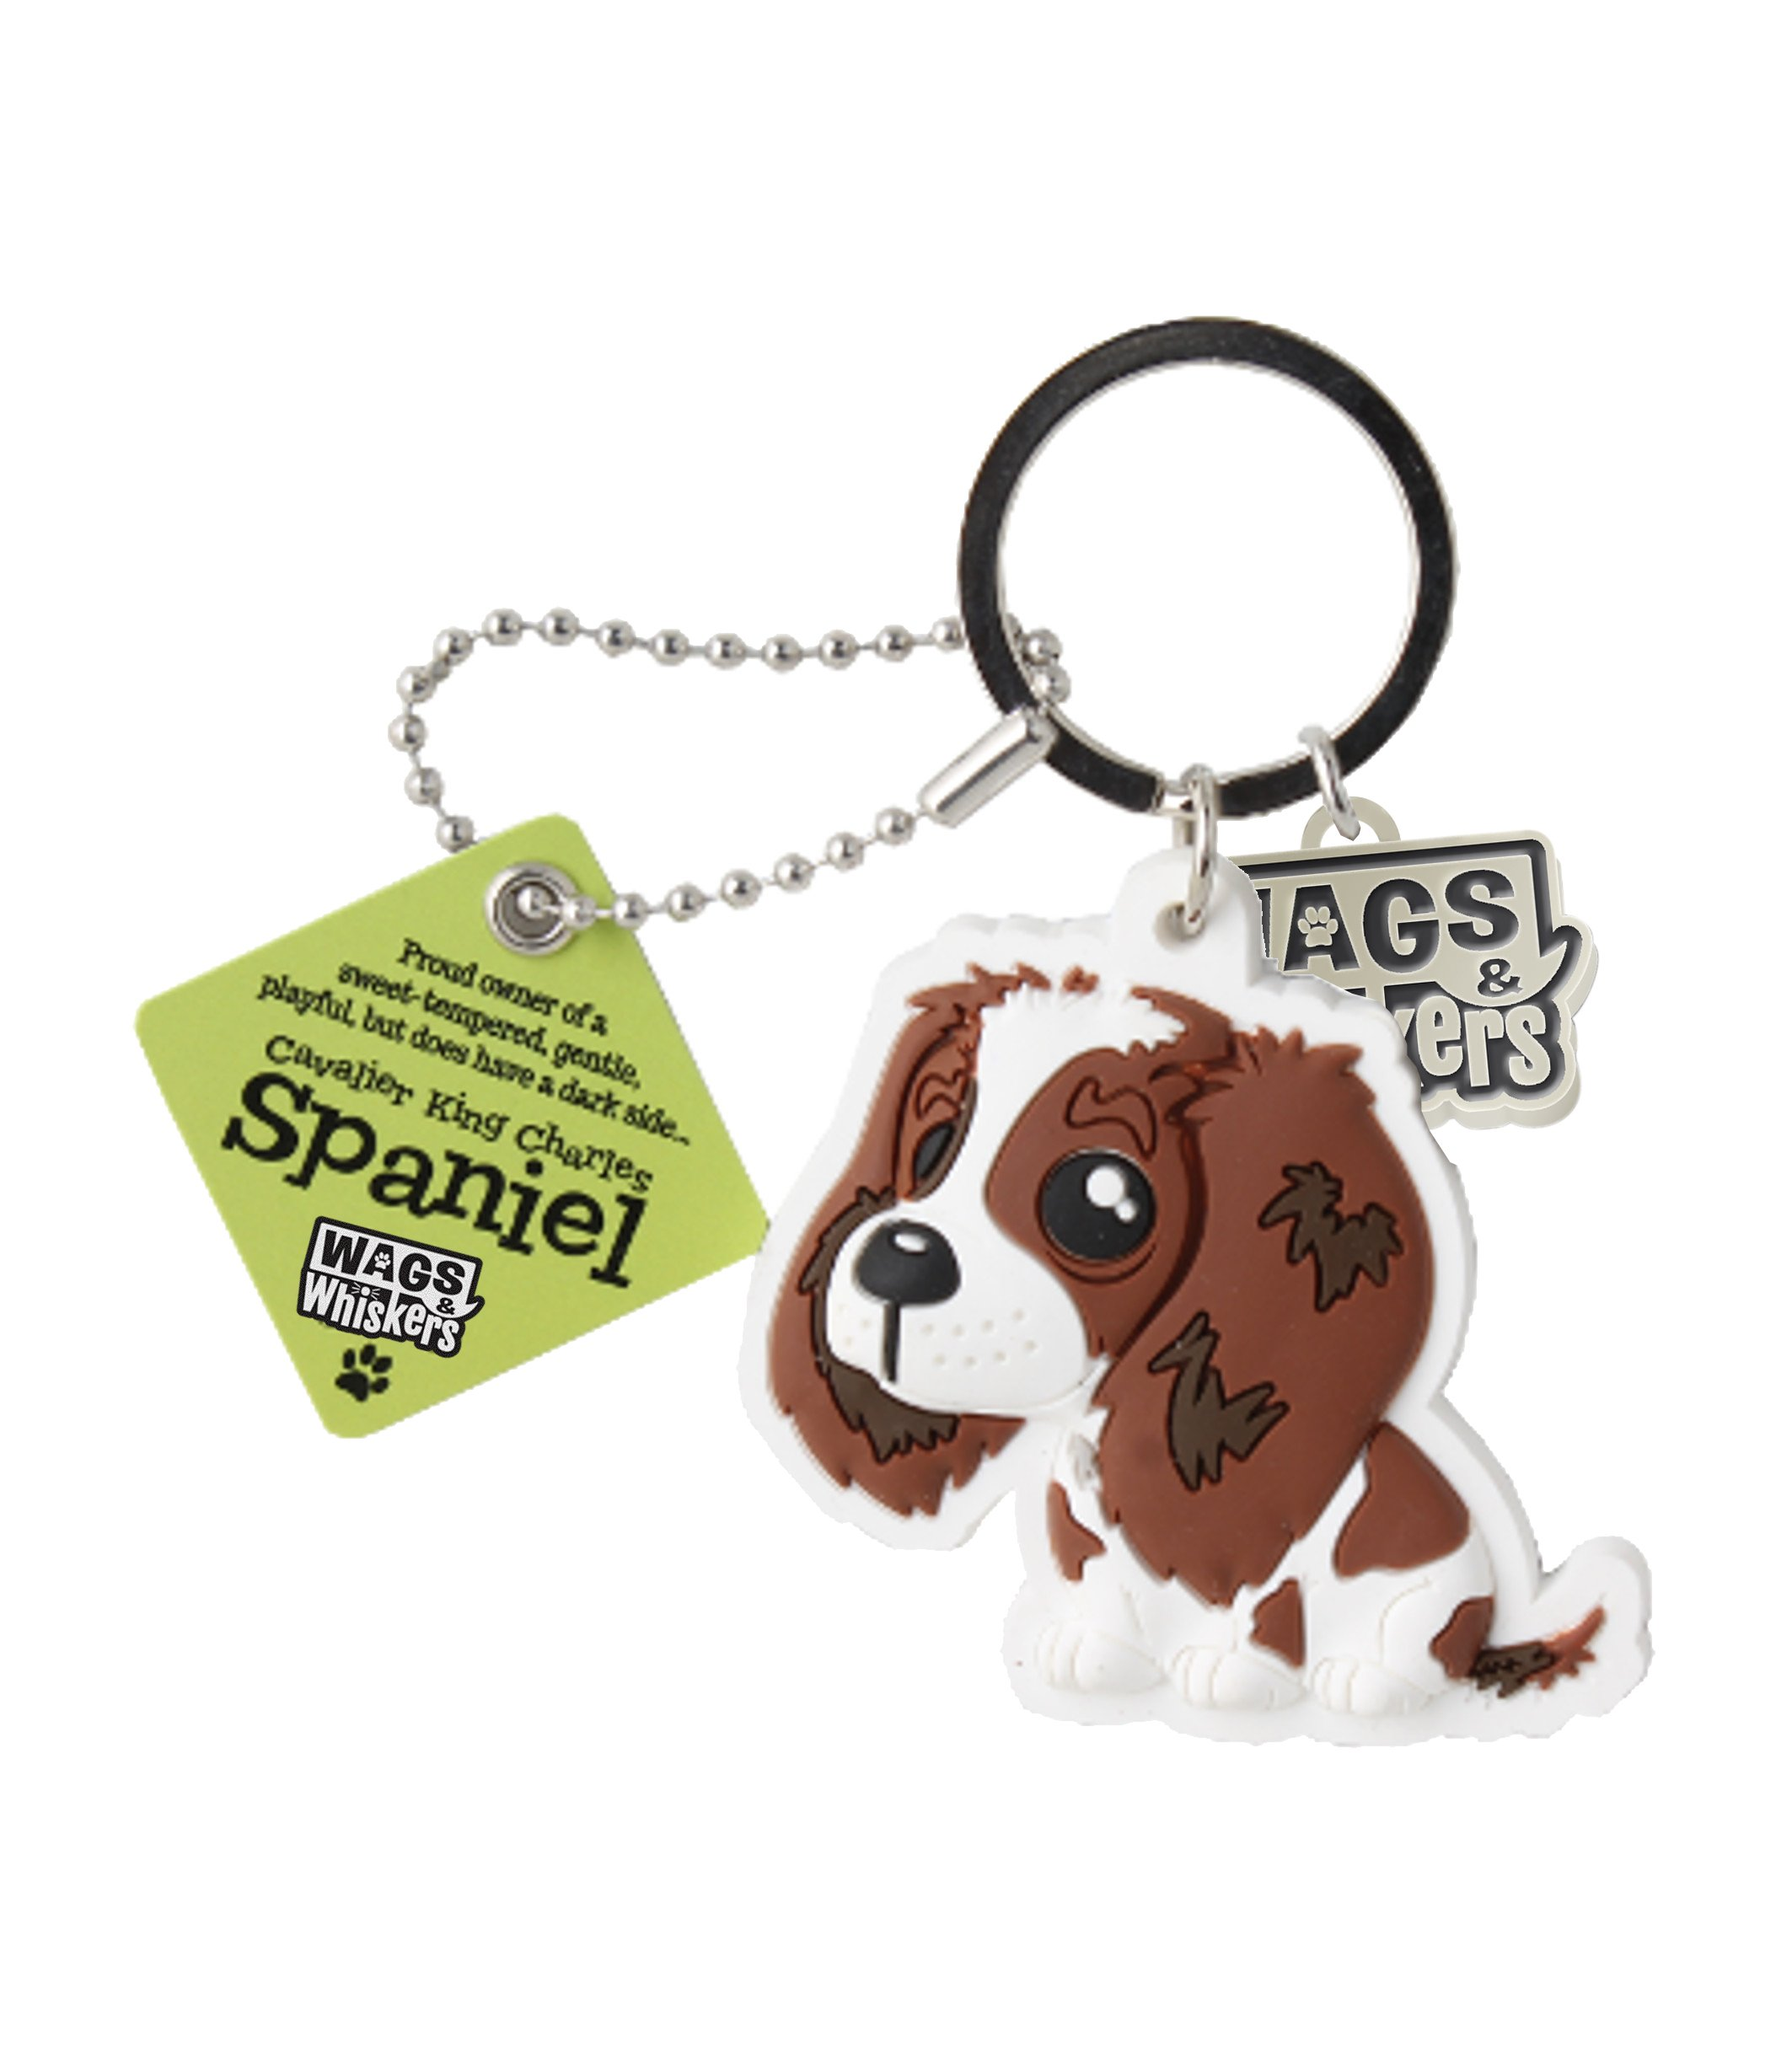 Wags and Whiskers Cavalier King Charles Spaniel Key Chain, 4 x 2, (Model: 886767110493)